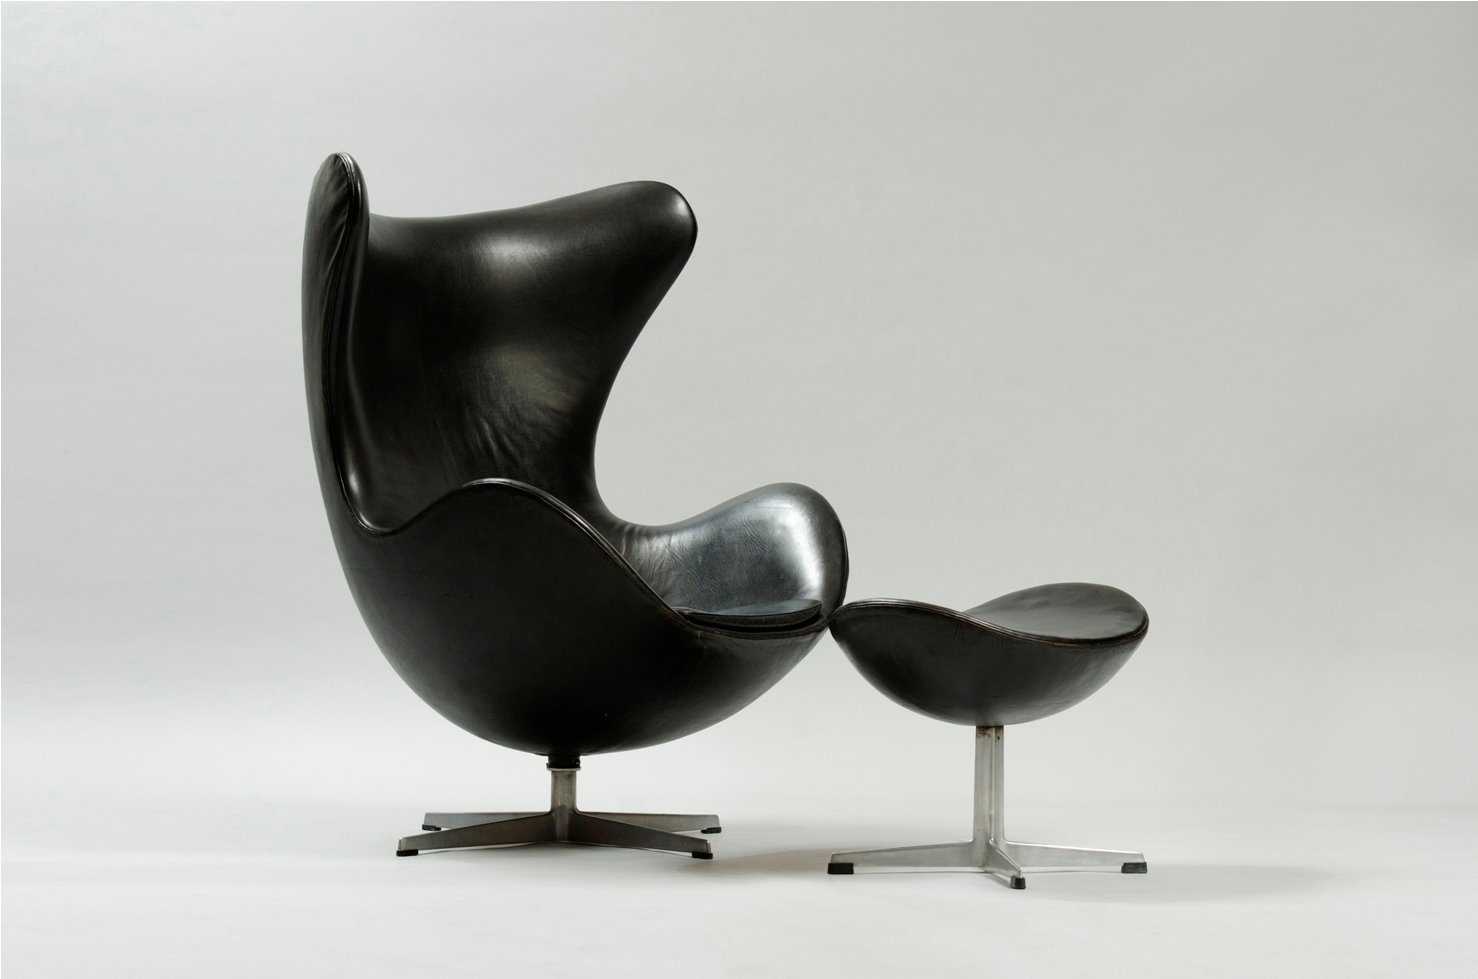 egg chair and ottoman by arne jacobsen for fritz hansen for sale at pamono. Black Bedroom Furniture Sets. Home Design Ideas